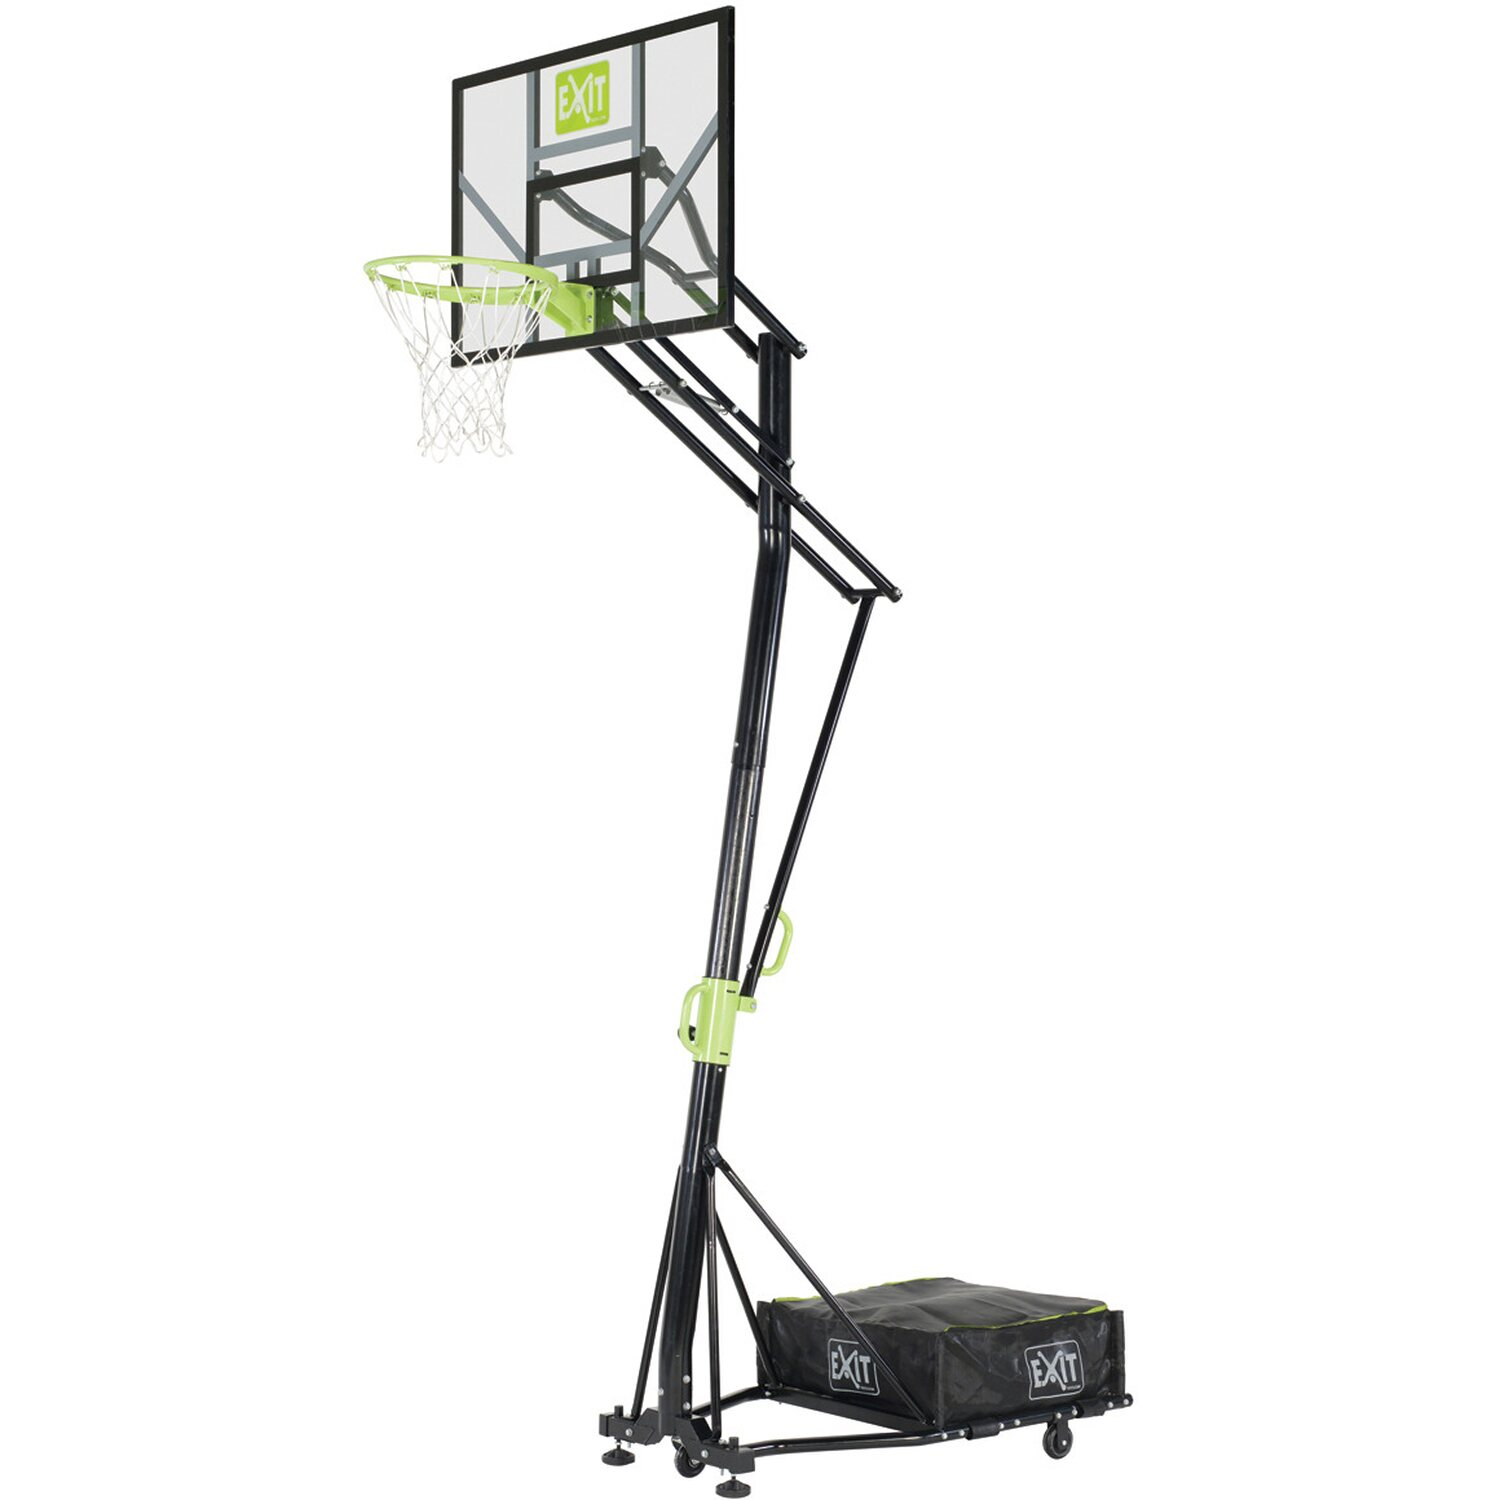 Exit Toys Exit Basketball-Korb Galaxy Portable Basket